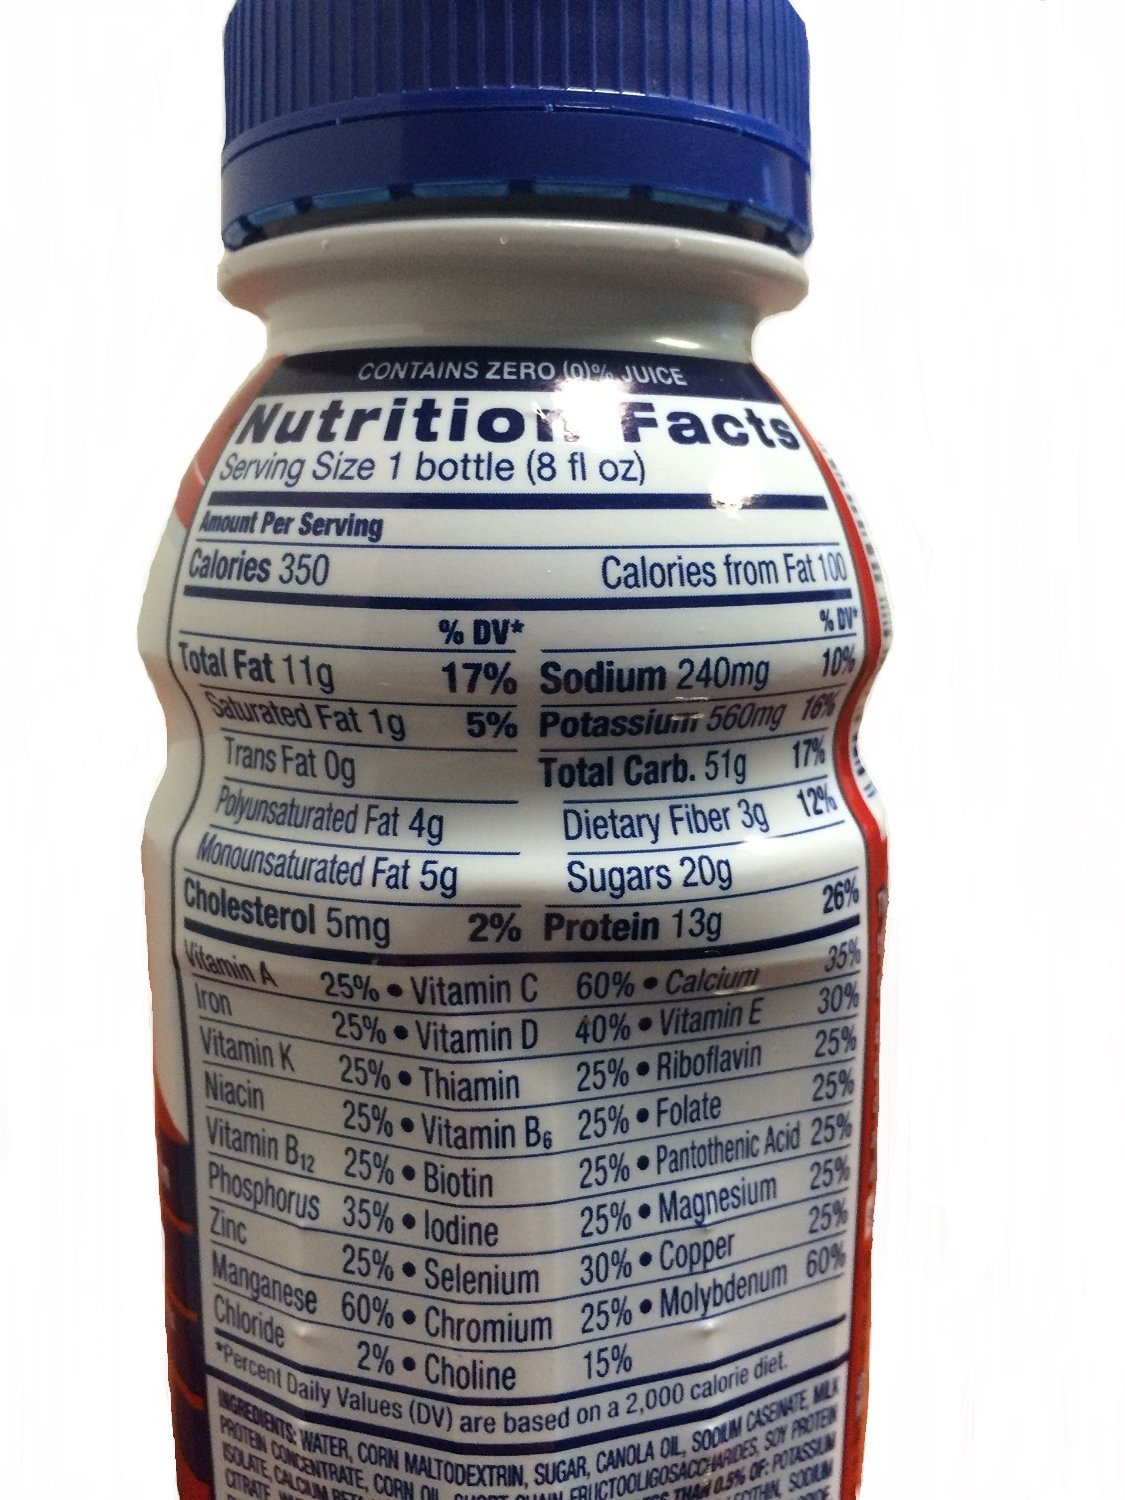 Ensure Complete (Formerly Clinical Strength) Strawberry 24/8-Fl-Oz-Bottle - 1 Case Of 24 by Abbott Nutrition (Image #2)